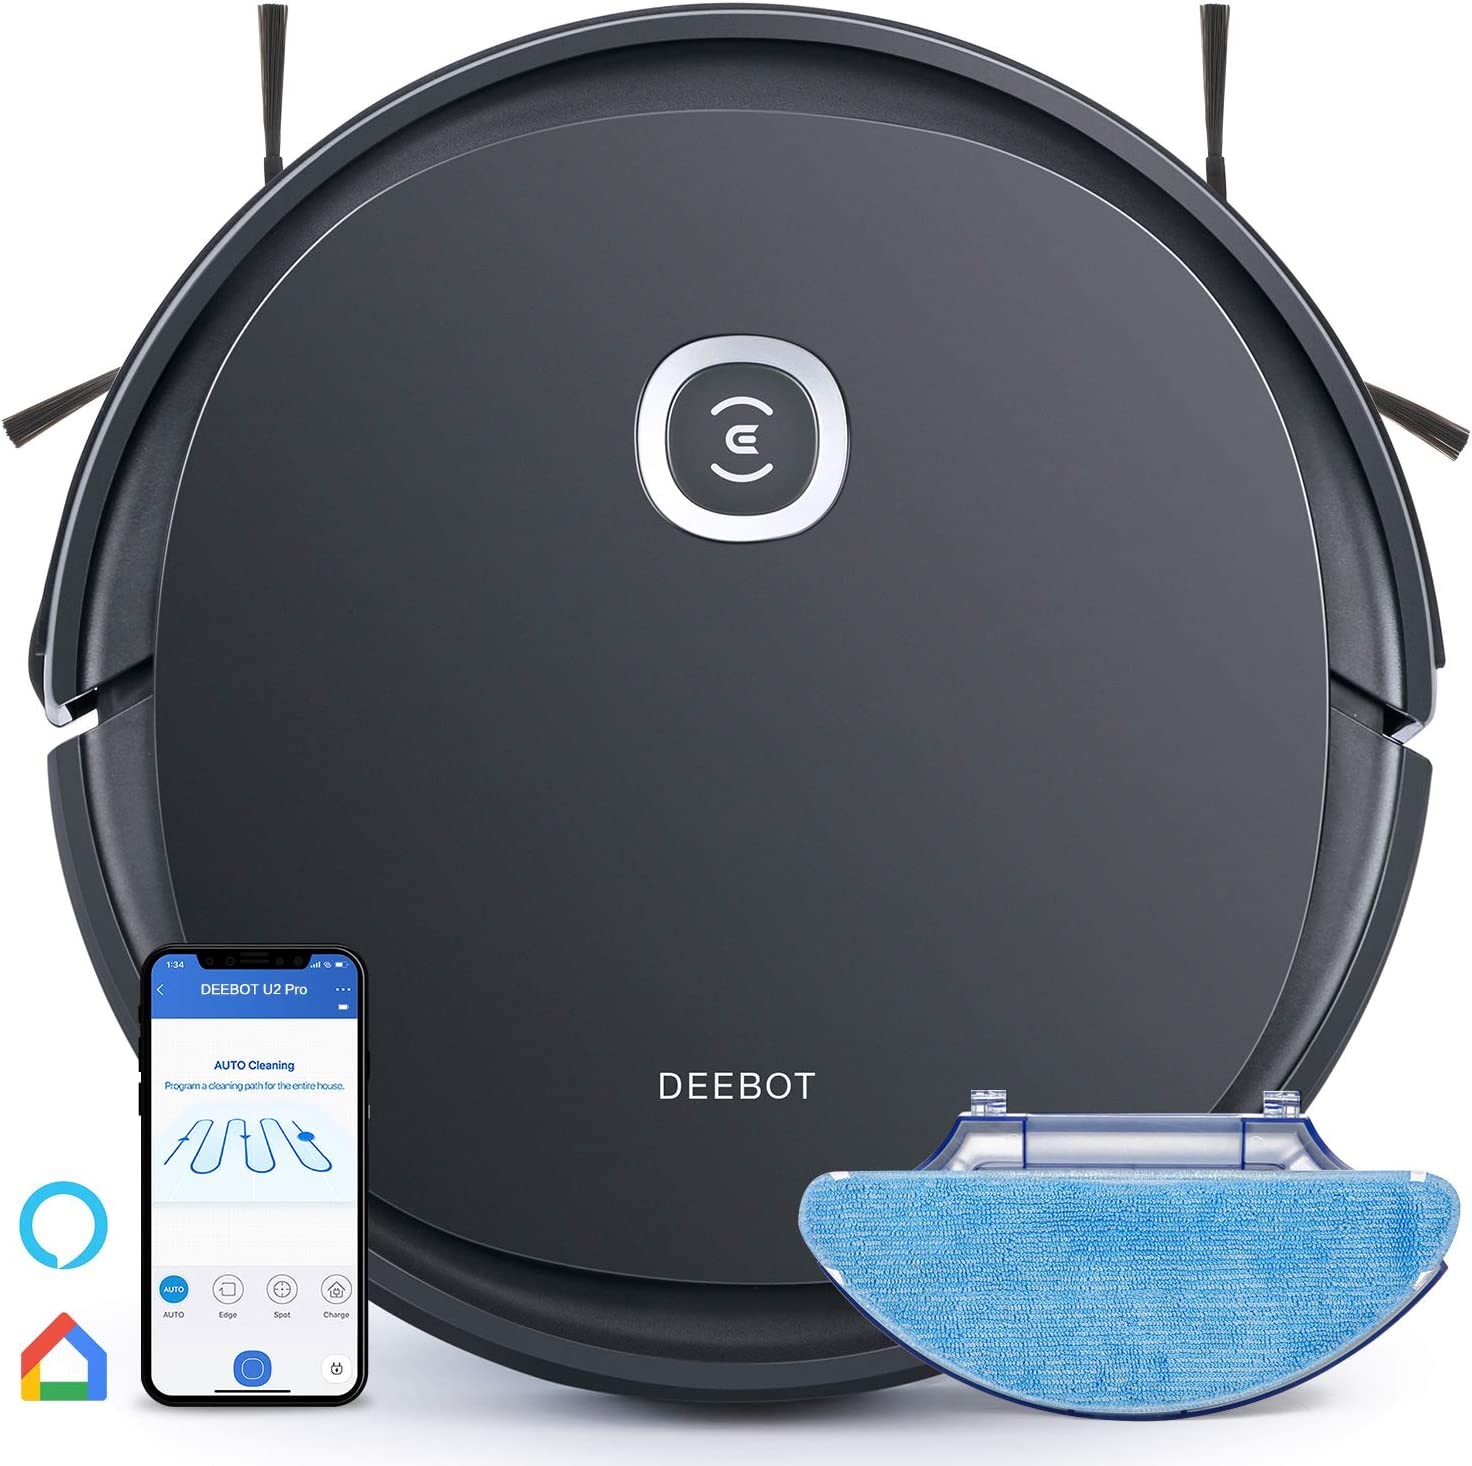 Ecovacs Deebot OZMO U2 Pro Robot Vacuum Cleaner 2in1 Vacuum and Mop, Extra Pet Care Kit 800ml Large Dustbin & Tangle-Free Brush, Ideal for Pet Hair, No-Go Zones, 2.5Hrs Run Time, Voice and App Control